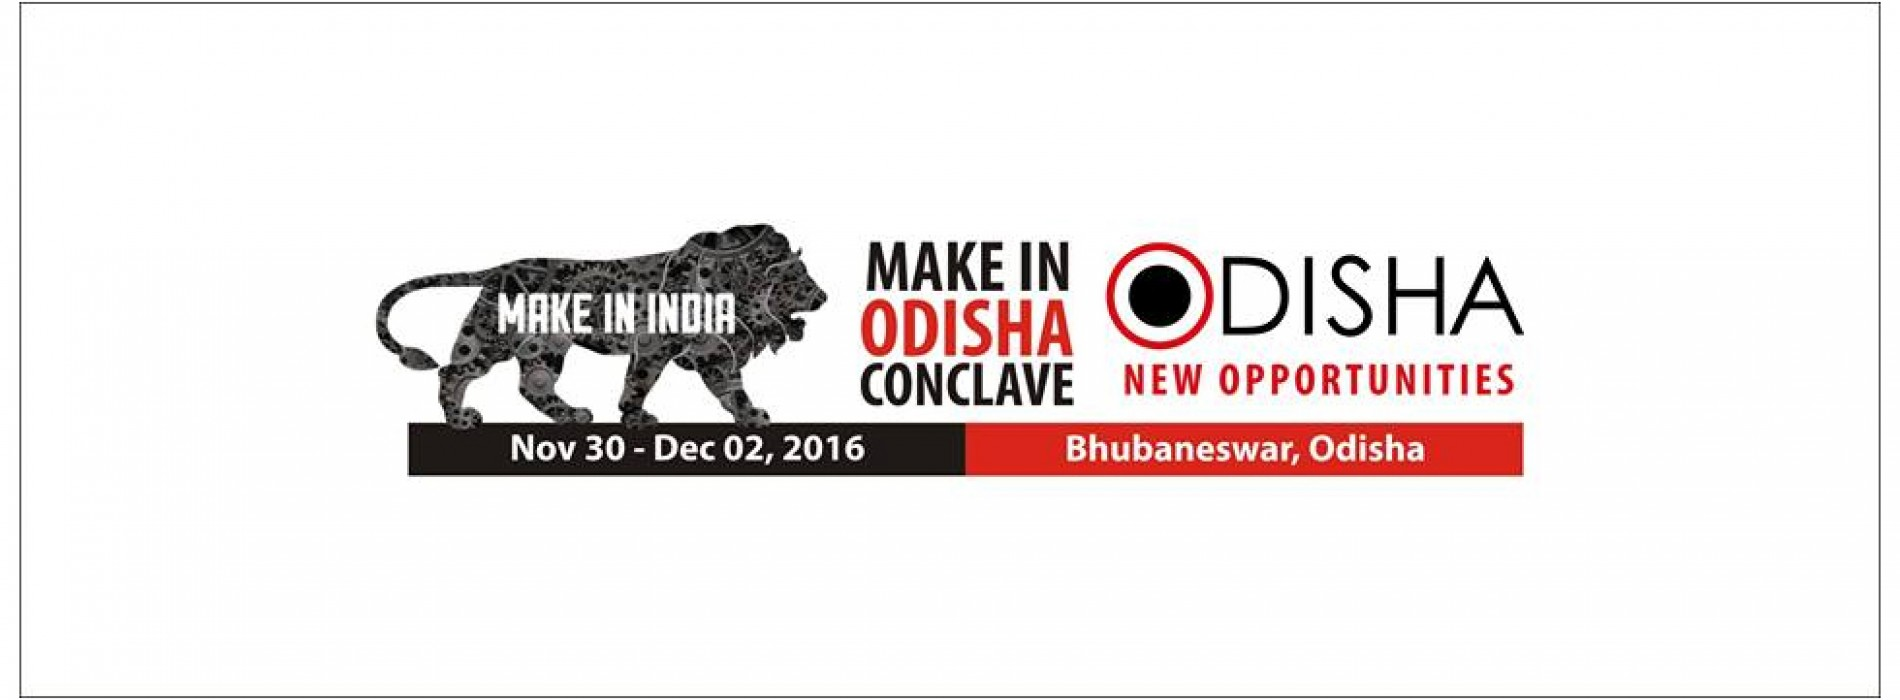 Make-in-Odisha: Industries Minister Debiprasad Mishra leads Government-industry delegation to Roadshow in Hyderabad